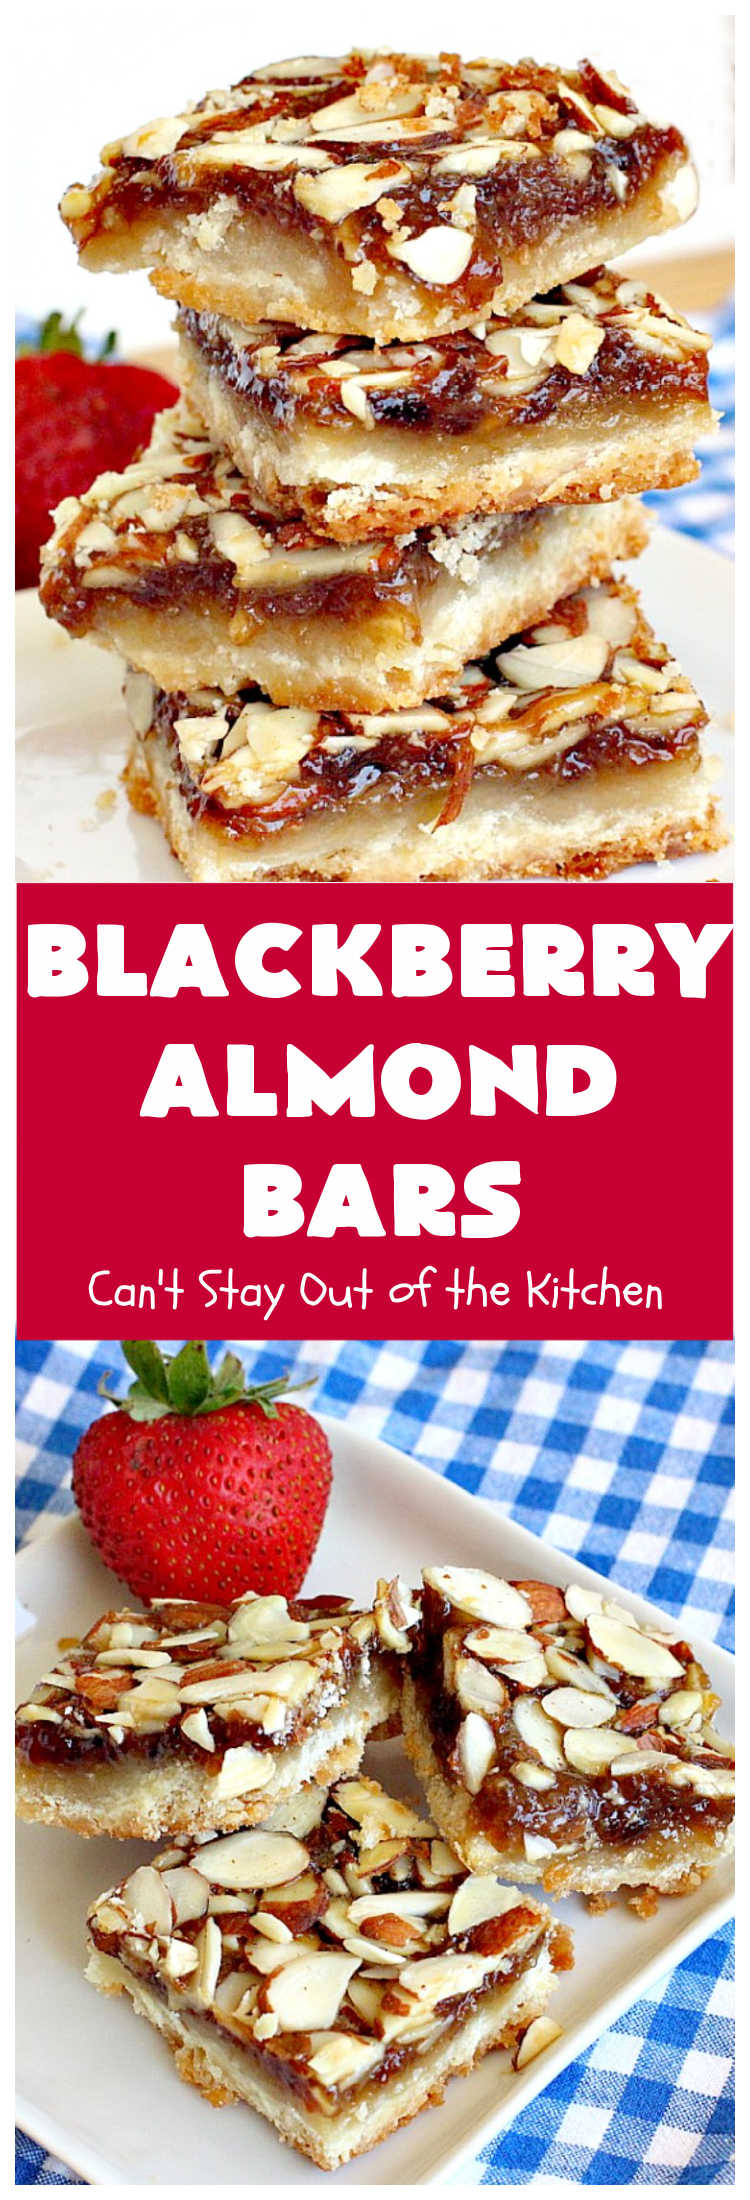 Blackberry Almond Bars | Can't Stay Out of the Kitchen | Your family will rave over these ooey, gooey delicious #dessert bars. The shortbread crust is topped with #blackberry filling and sliced #almonds.  They're absolutely divine! Delightful for #tailgating parties, potlucks, backyard BBQs & #holiday baking. # #BlackberryDessert #BlackberryAlmondBars